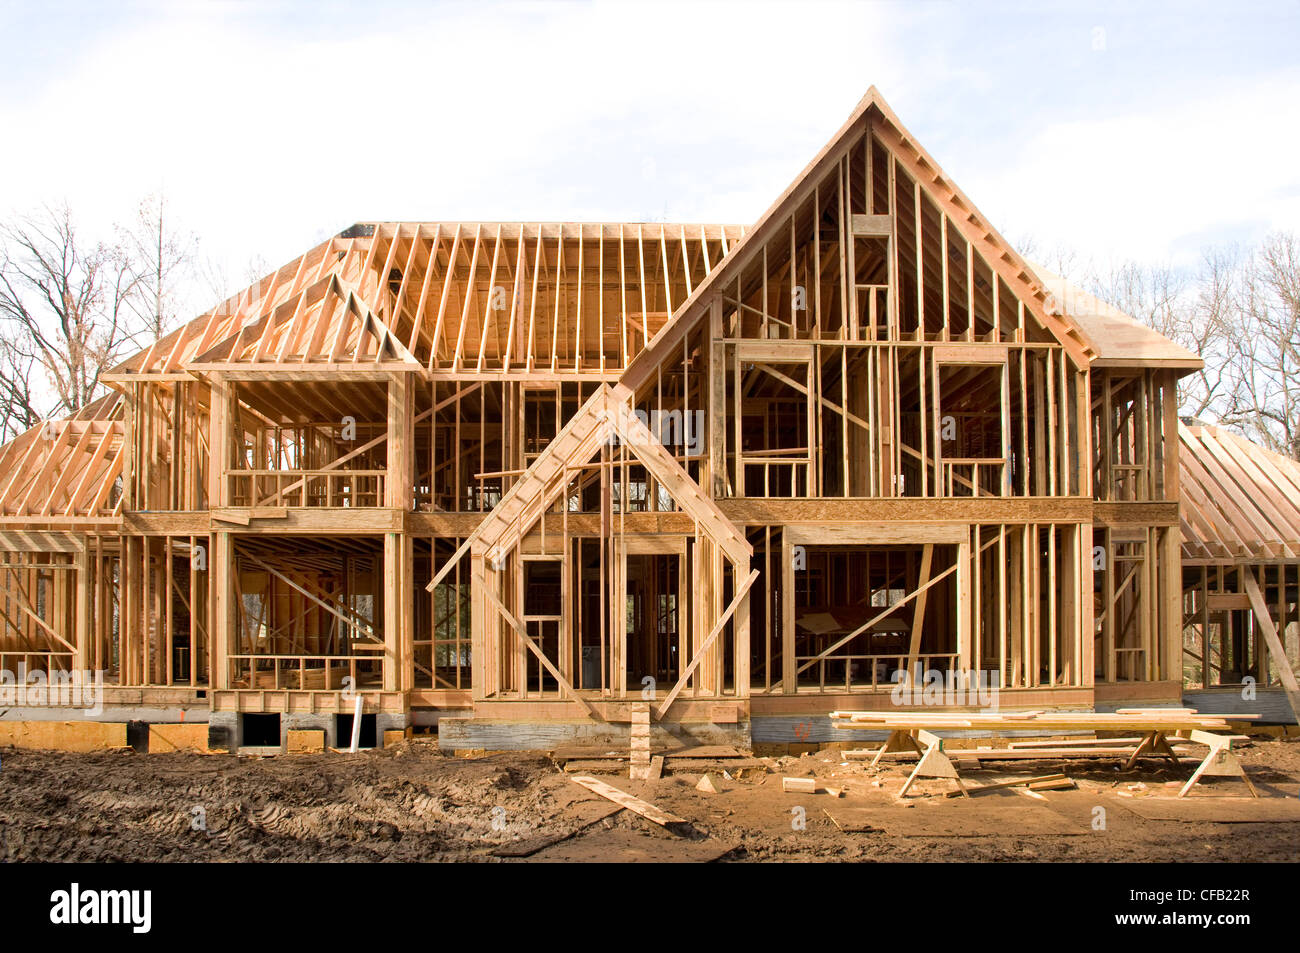 large mcmansion type house under construction in framing phase stock